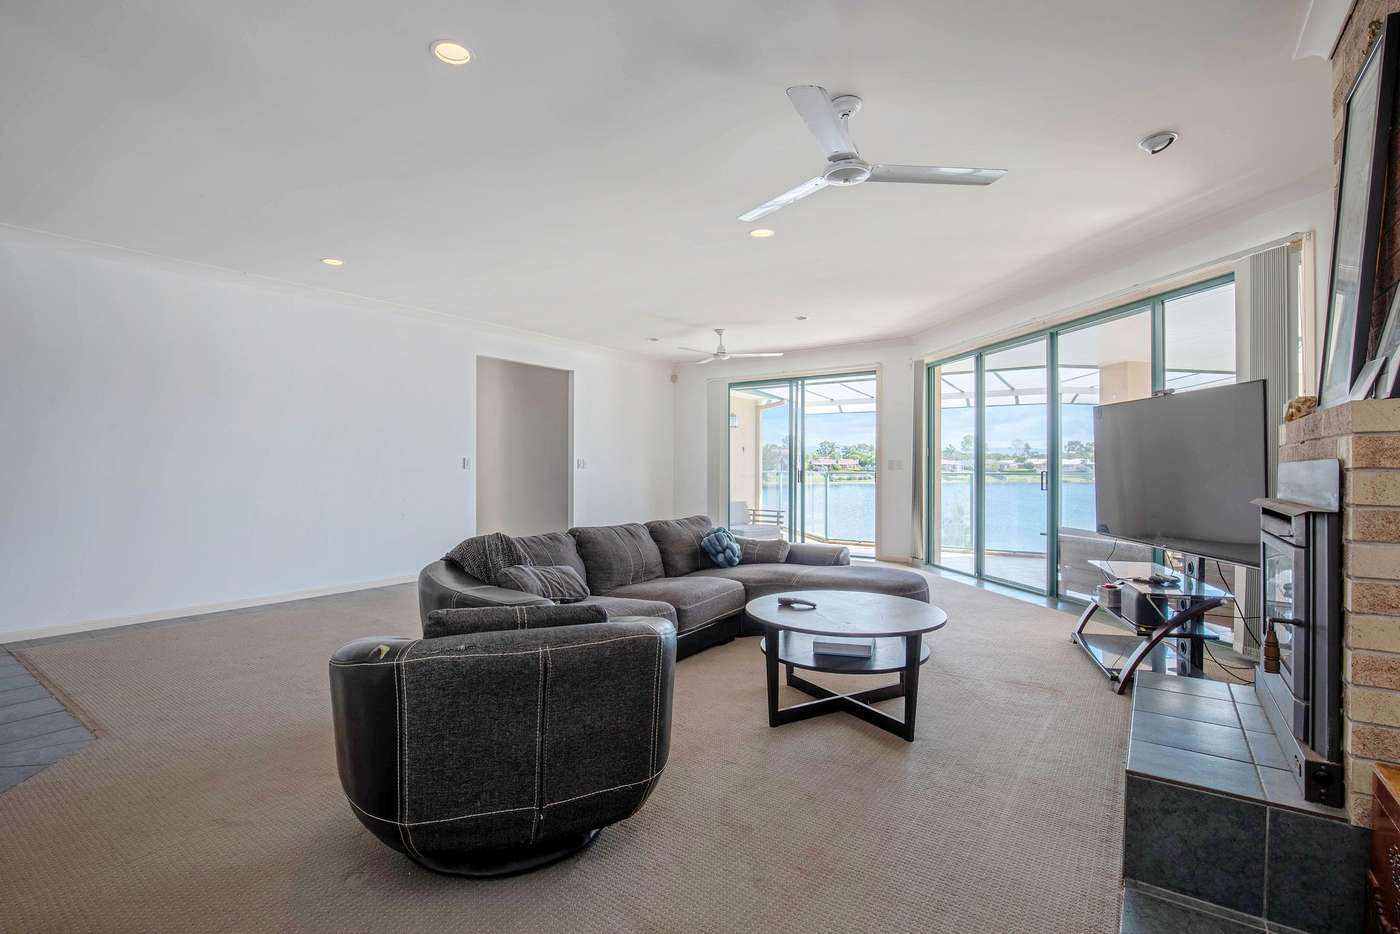 Sixth view of Homely house listing, 84 Dipper Drive, Burleigh Waters QLD 4220